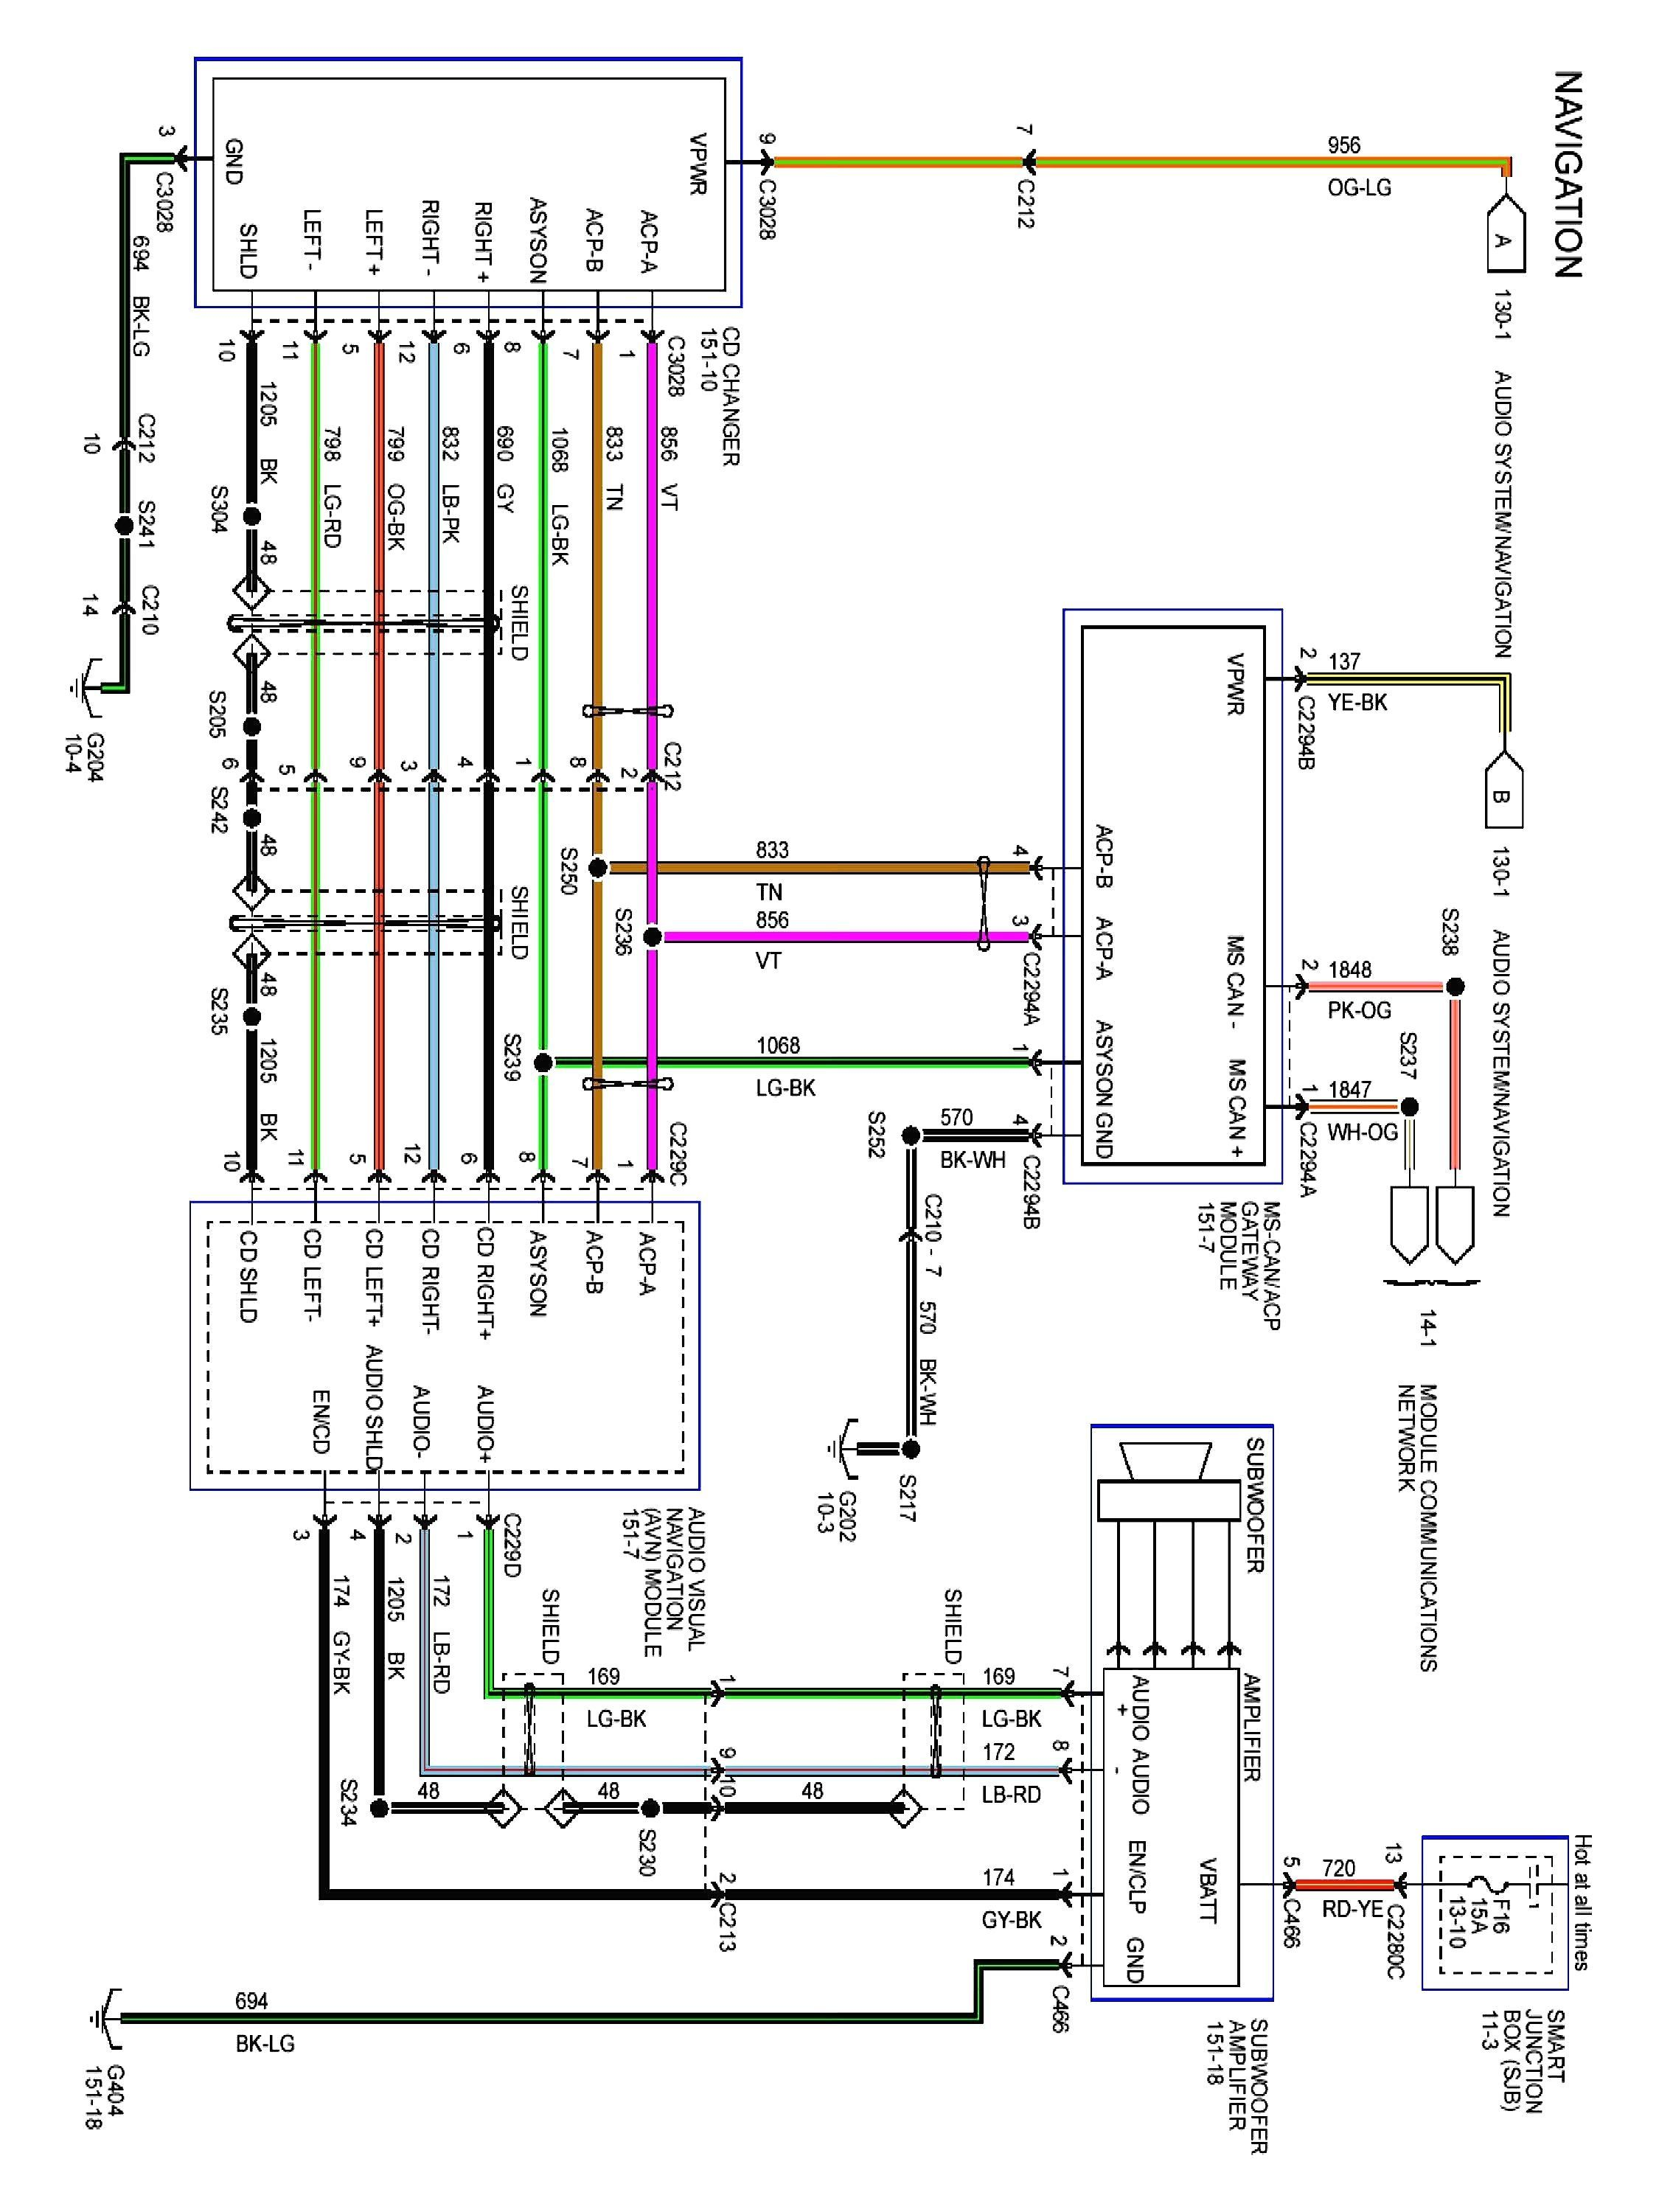 Ford Factory Amplifier Wiring Diagram Http Bookingritzcarlton Info Ford Factory Amplifier Wiring Diagram Ford F150 F150 Ford